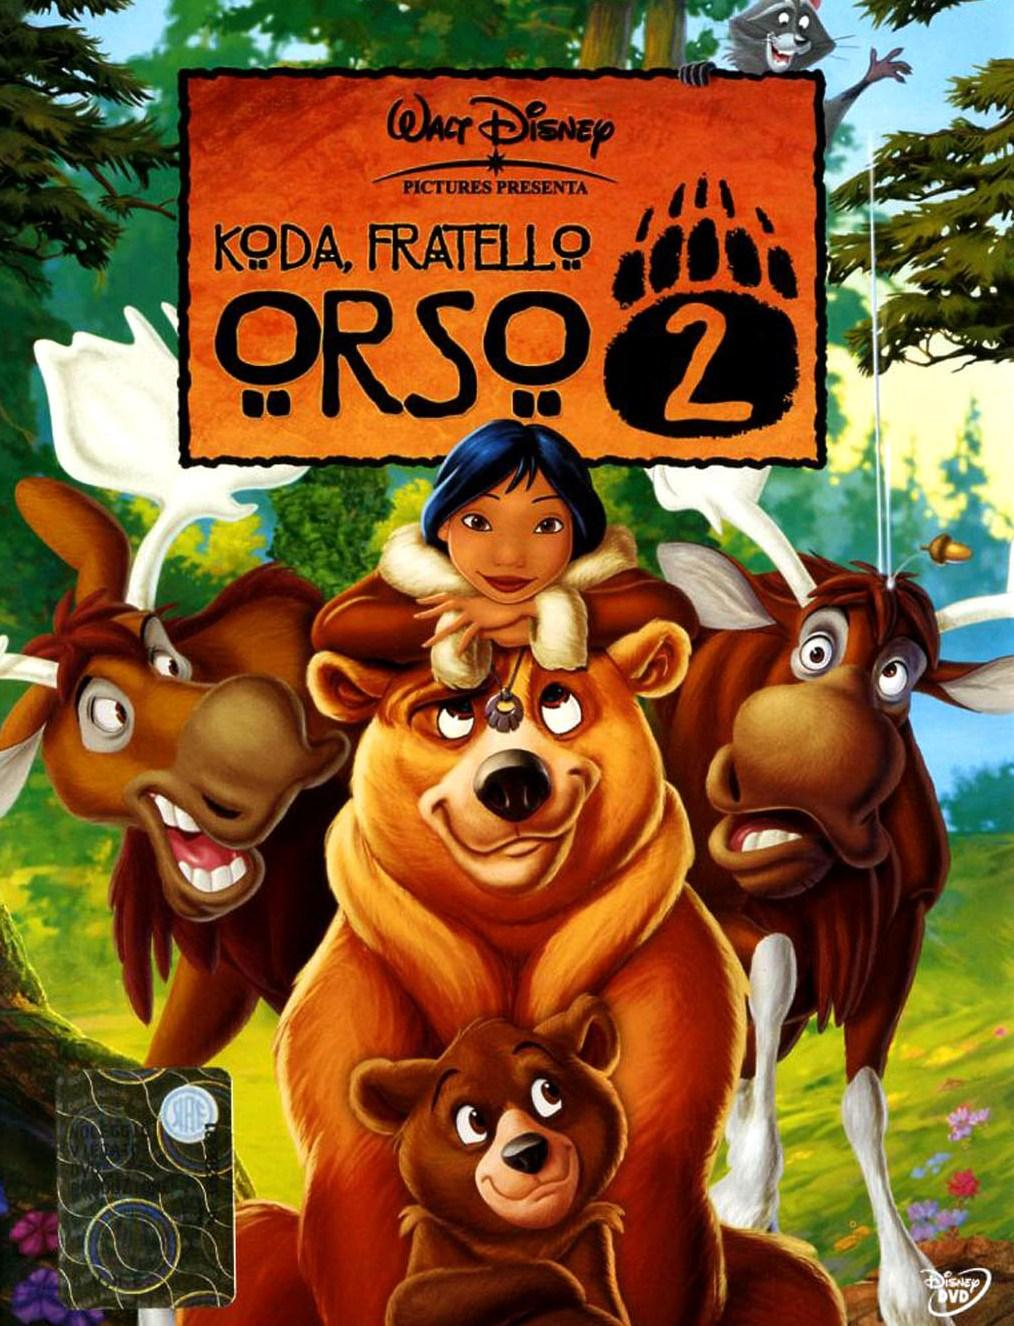 Koda Fratello Orso - Koda Brother Bear